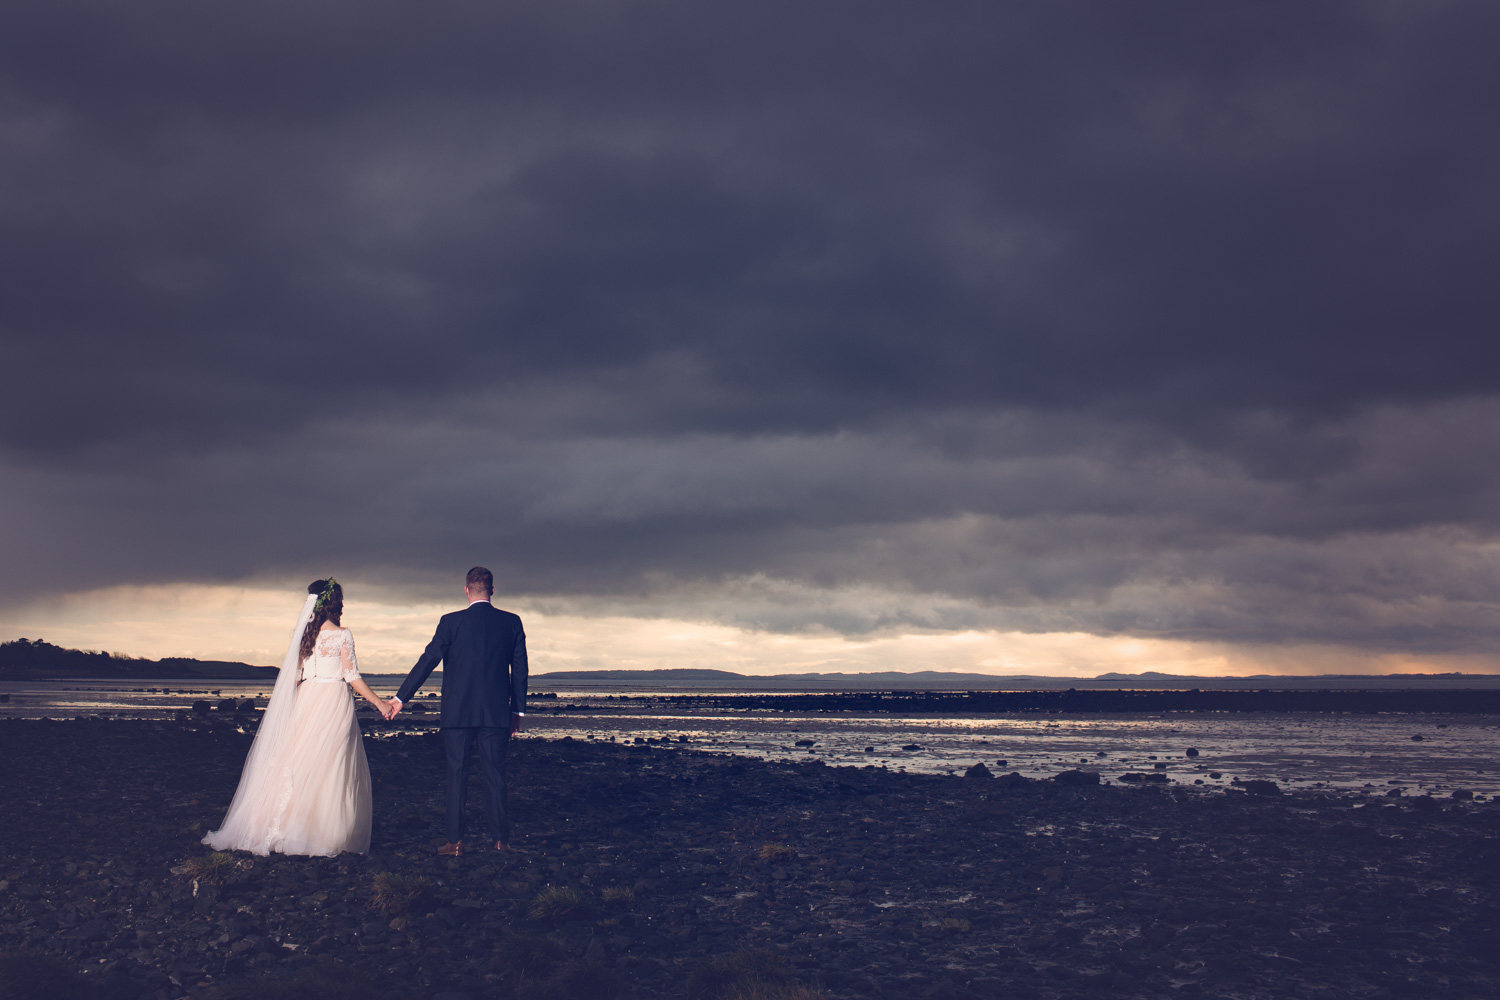 Mark_Barnes_wedding_photographer_Northern_Ireland_Wedding_photography_Orange_Tree_House_Greyabbey_Wedding_photography-47.jpg